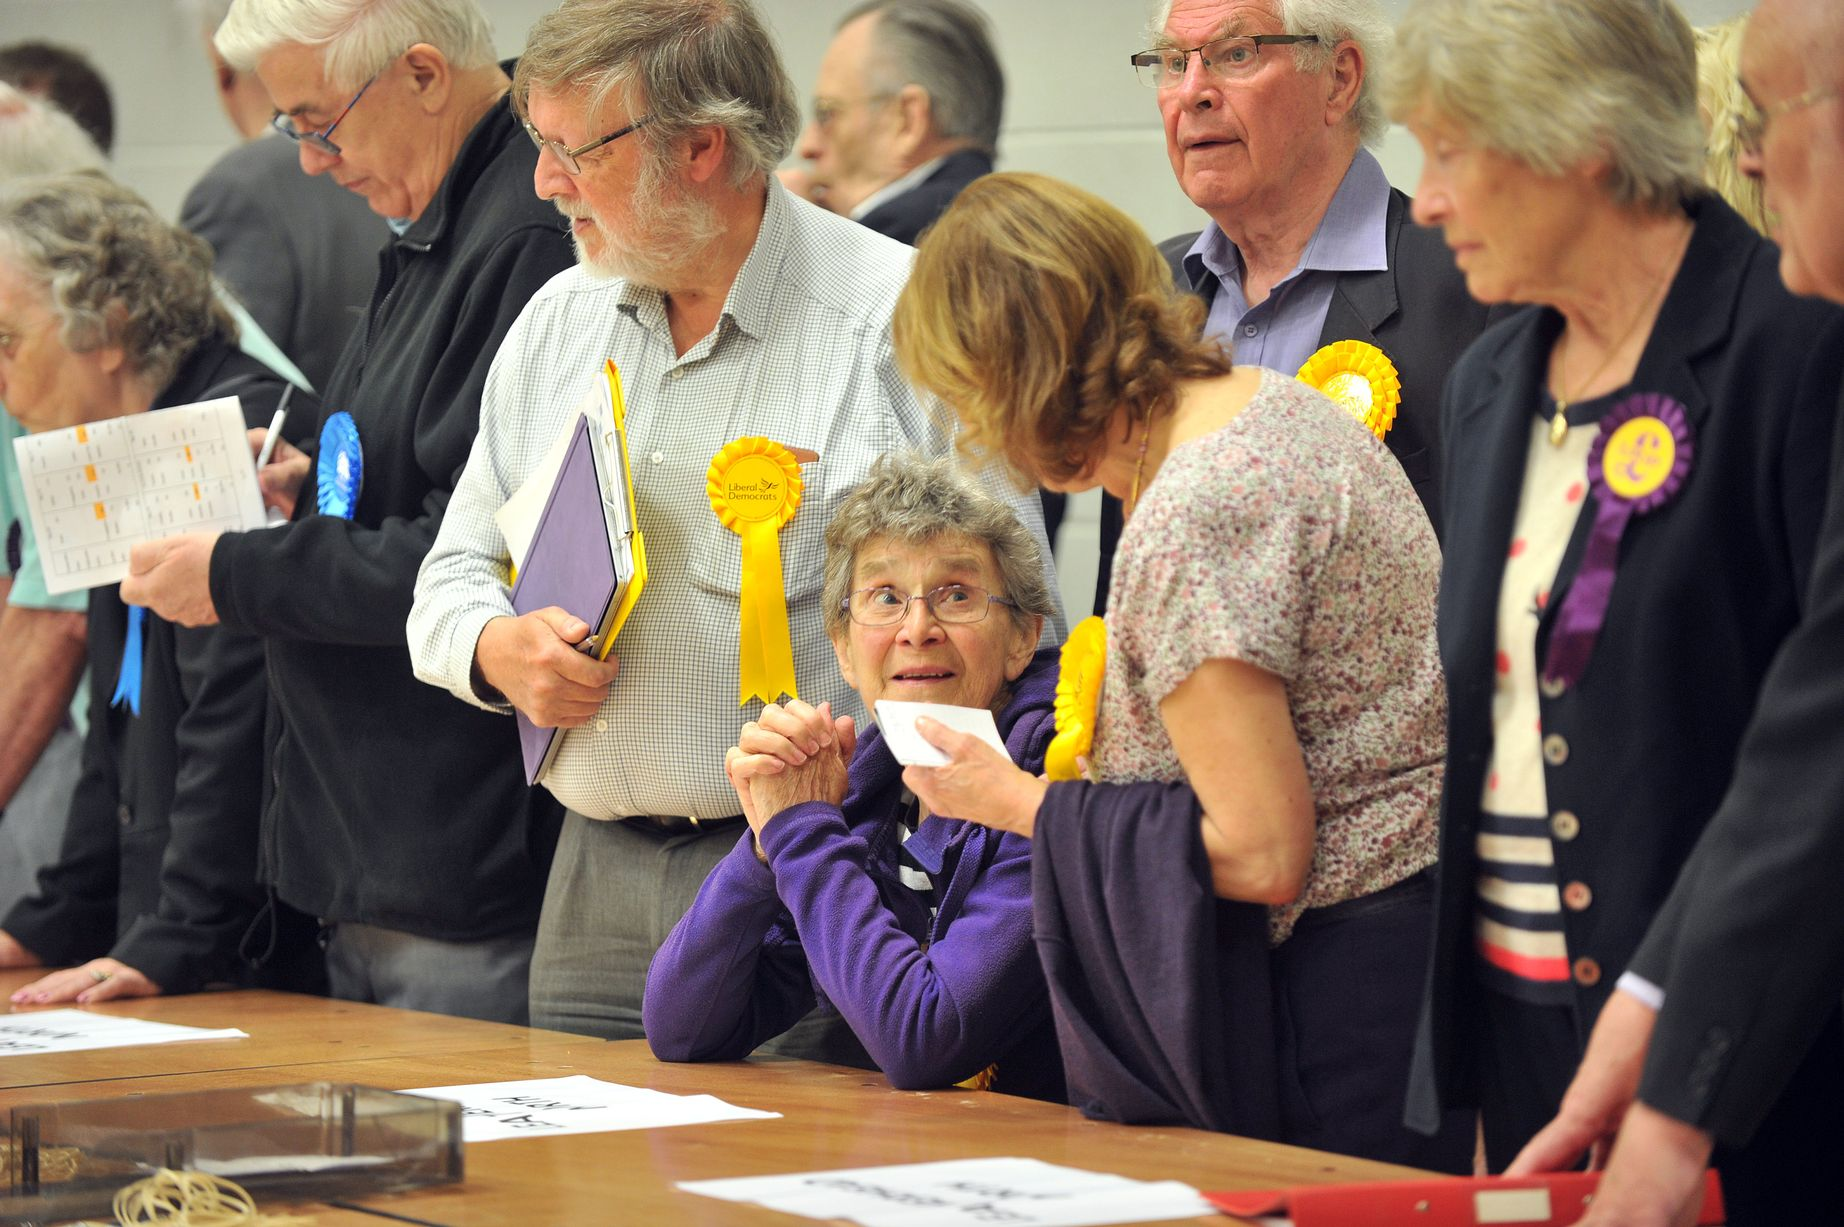 Lib Dem wins mean Conservatives lose overall control of Mole Valley District Council